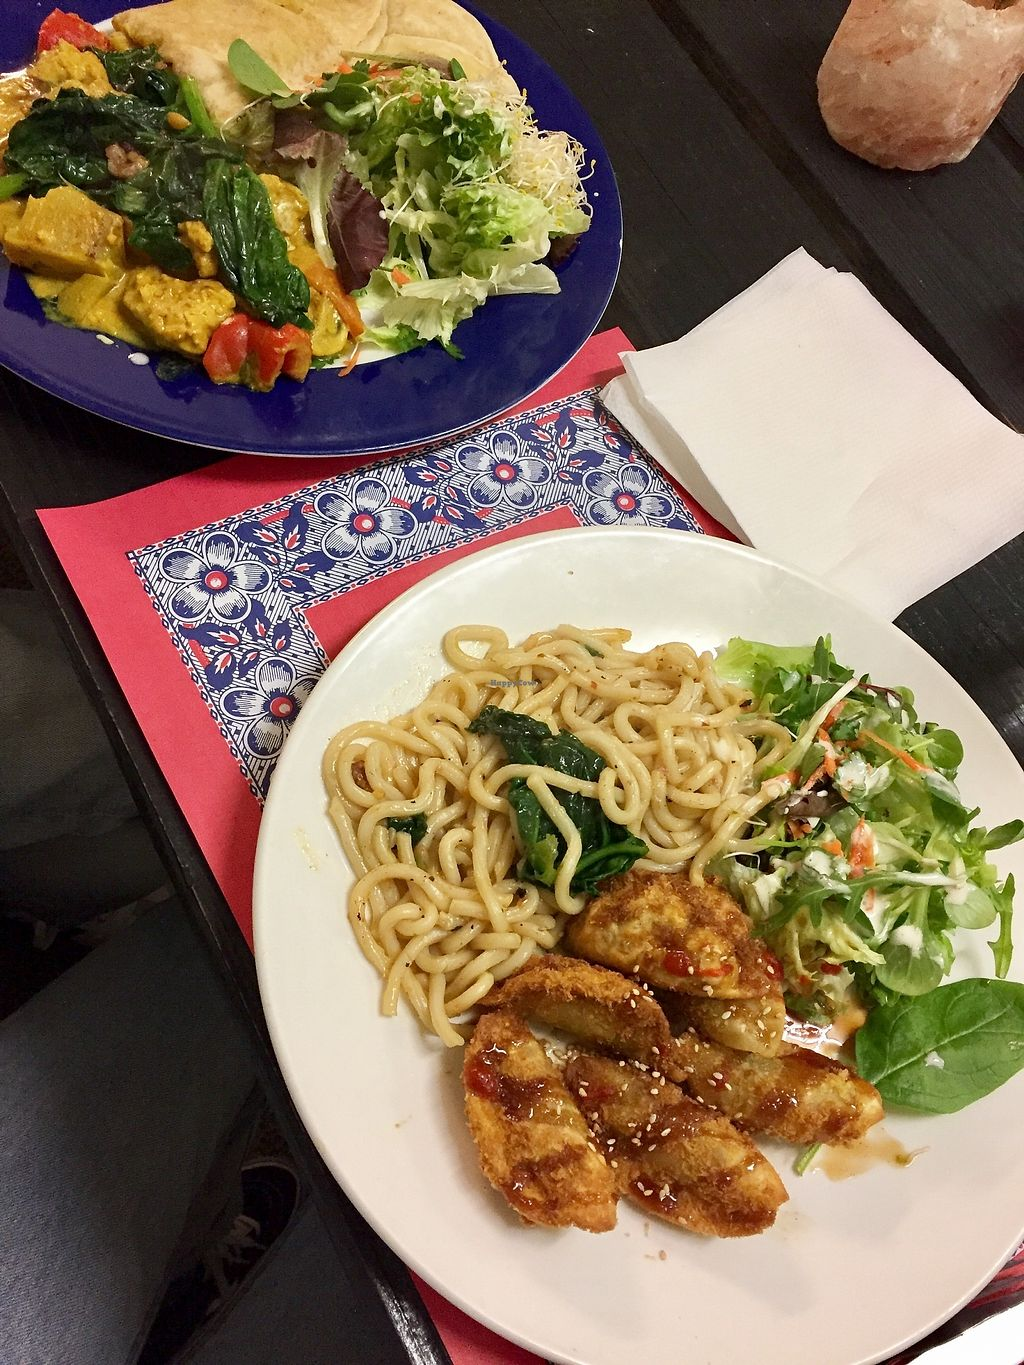 """Photo of TerraZen Centre  by <a href=""""/members/profile/Ricci%26Dez"""">Ricci&Dez</a> <br/>Jamaican plate and gyoza plate <br/> April 1, 2018  - <a href='/contact/abuse/image/29084/379424'>Report</a>"""